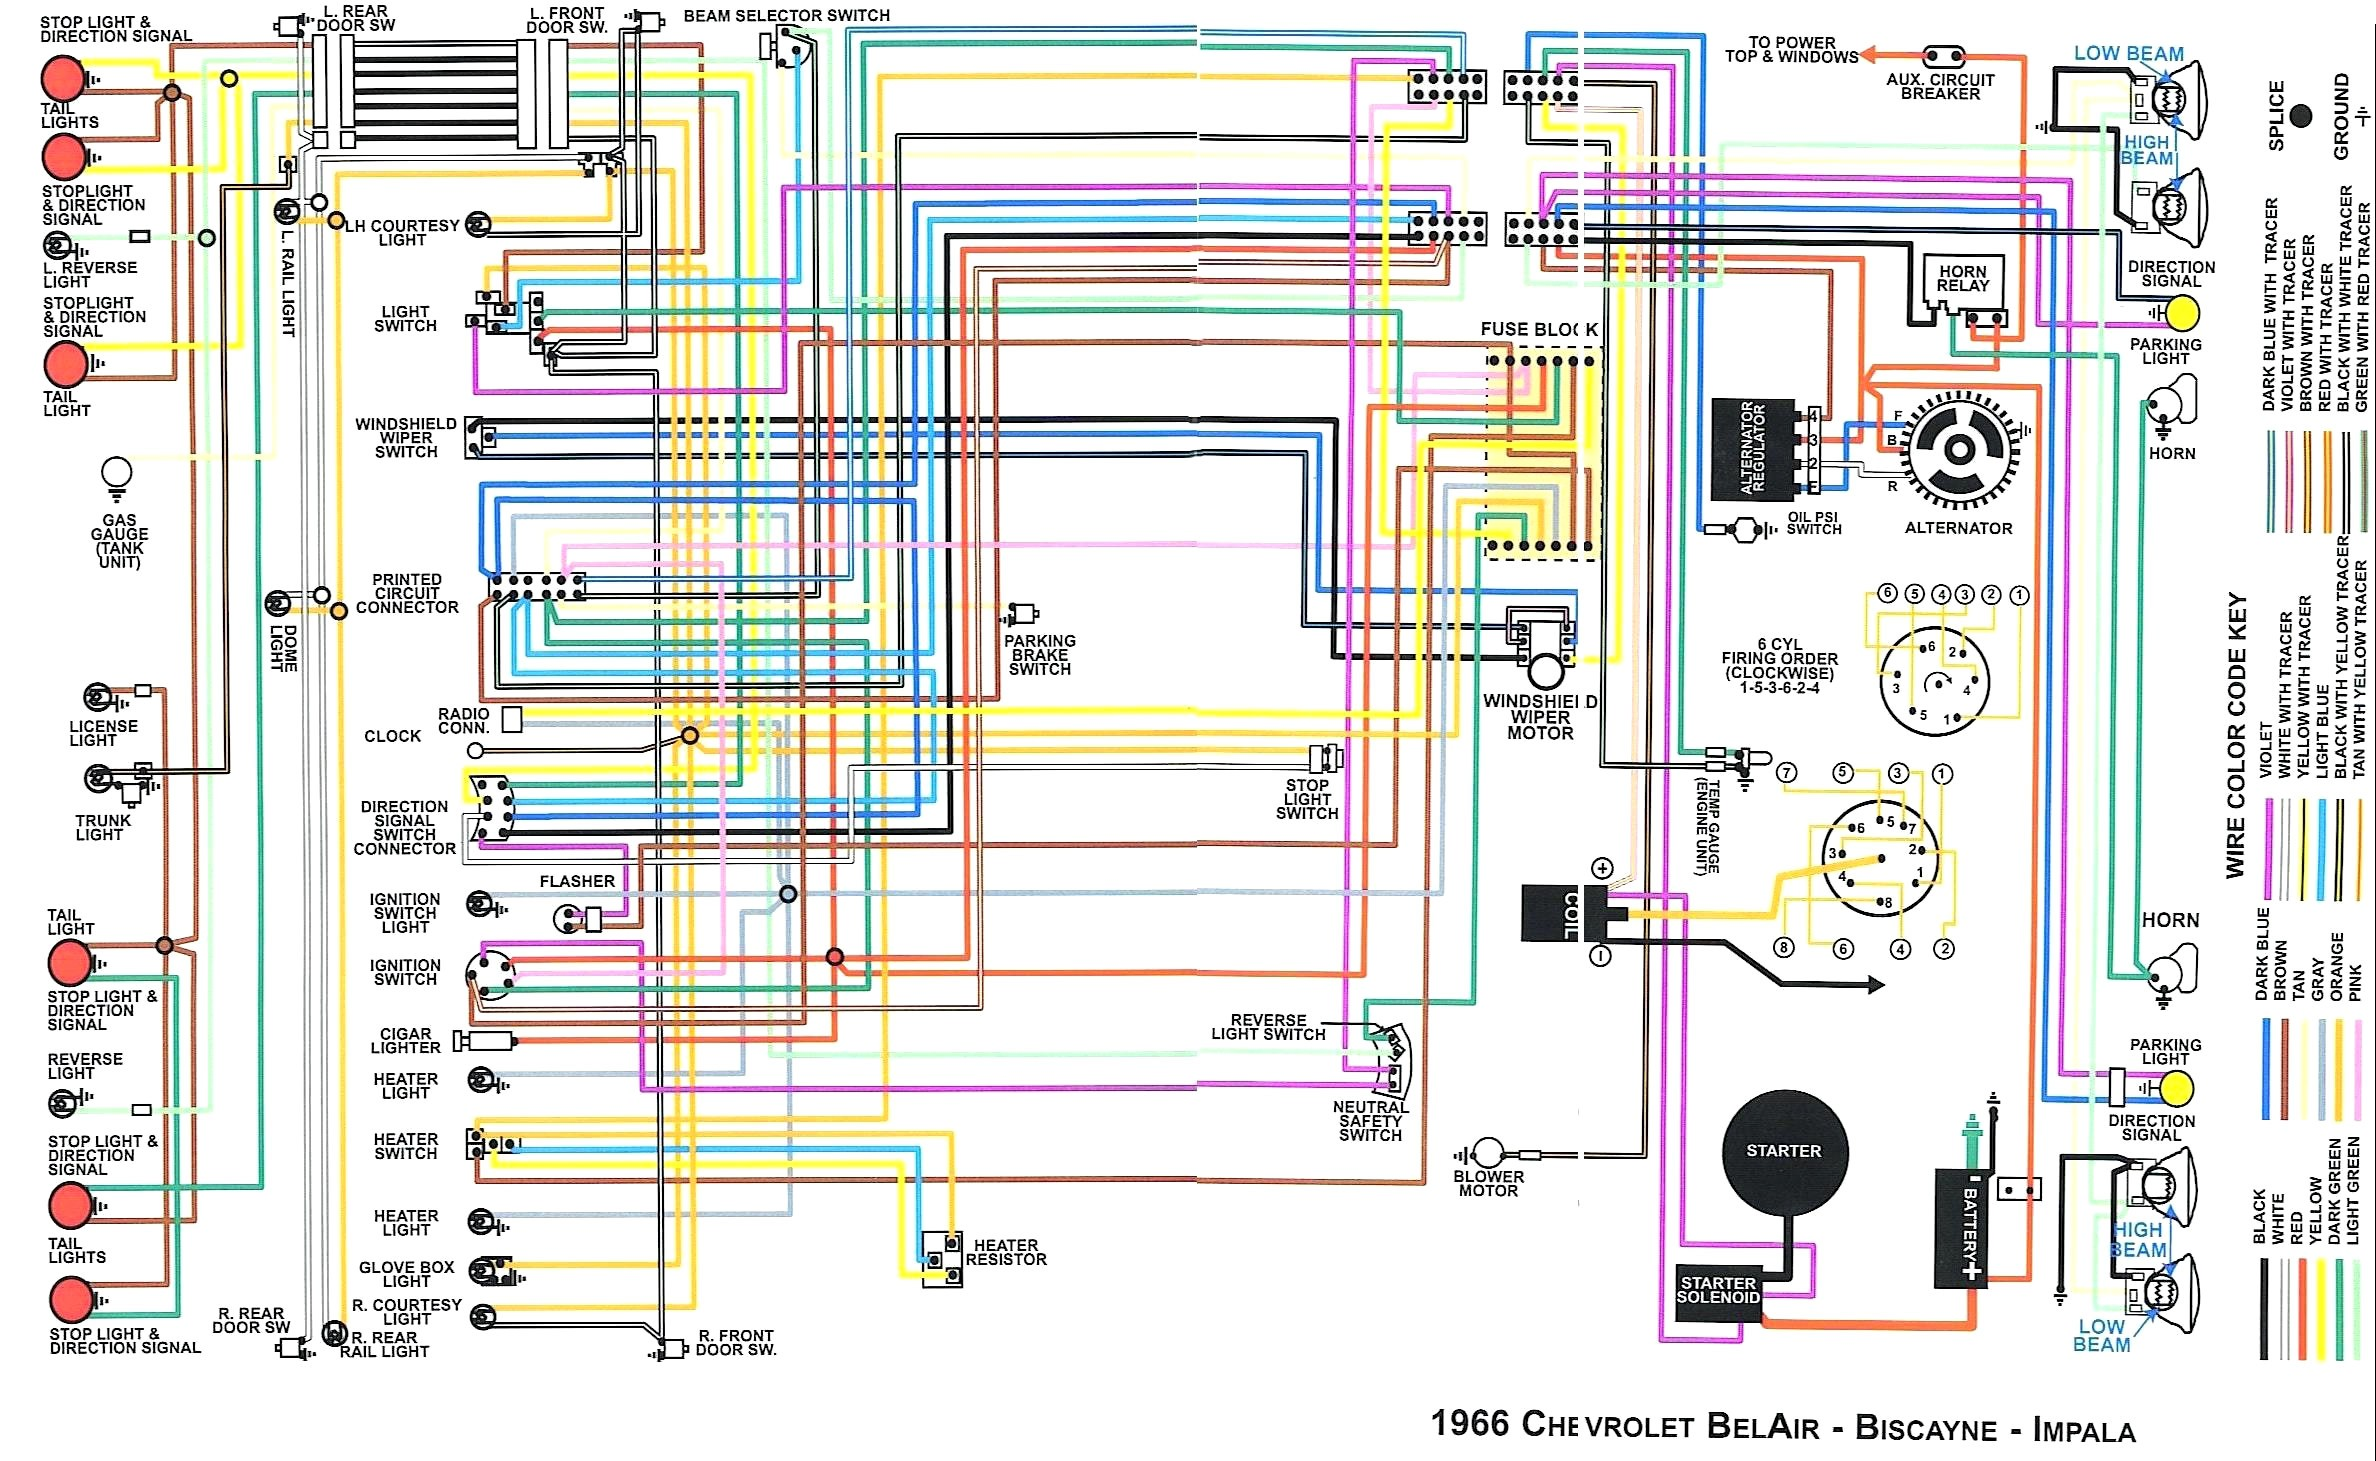 2006 Chevy Impala Wiring Diagram Complete Wiring Diagram